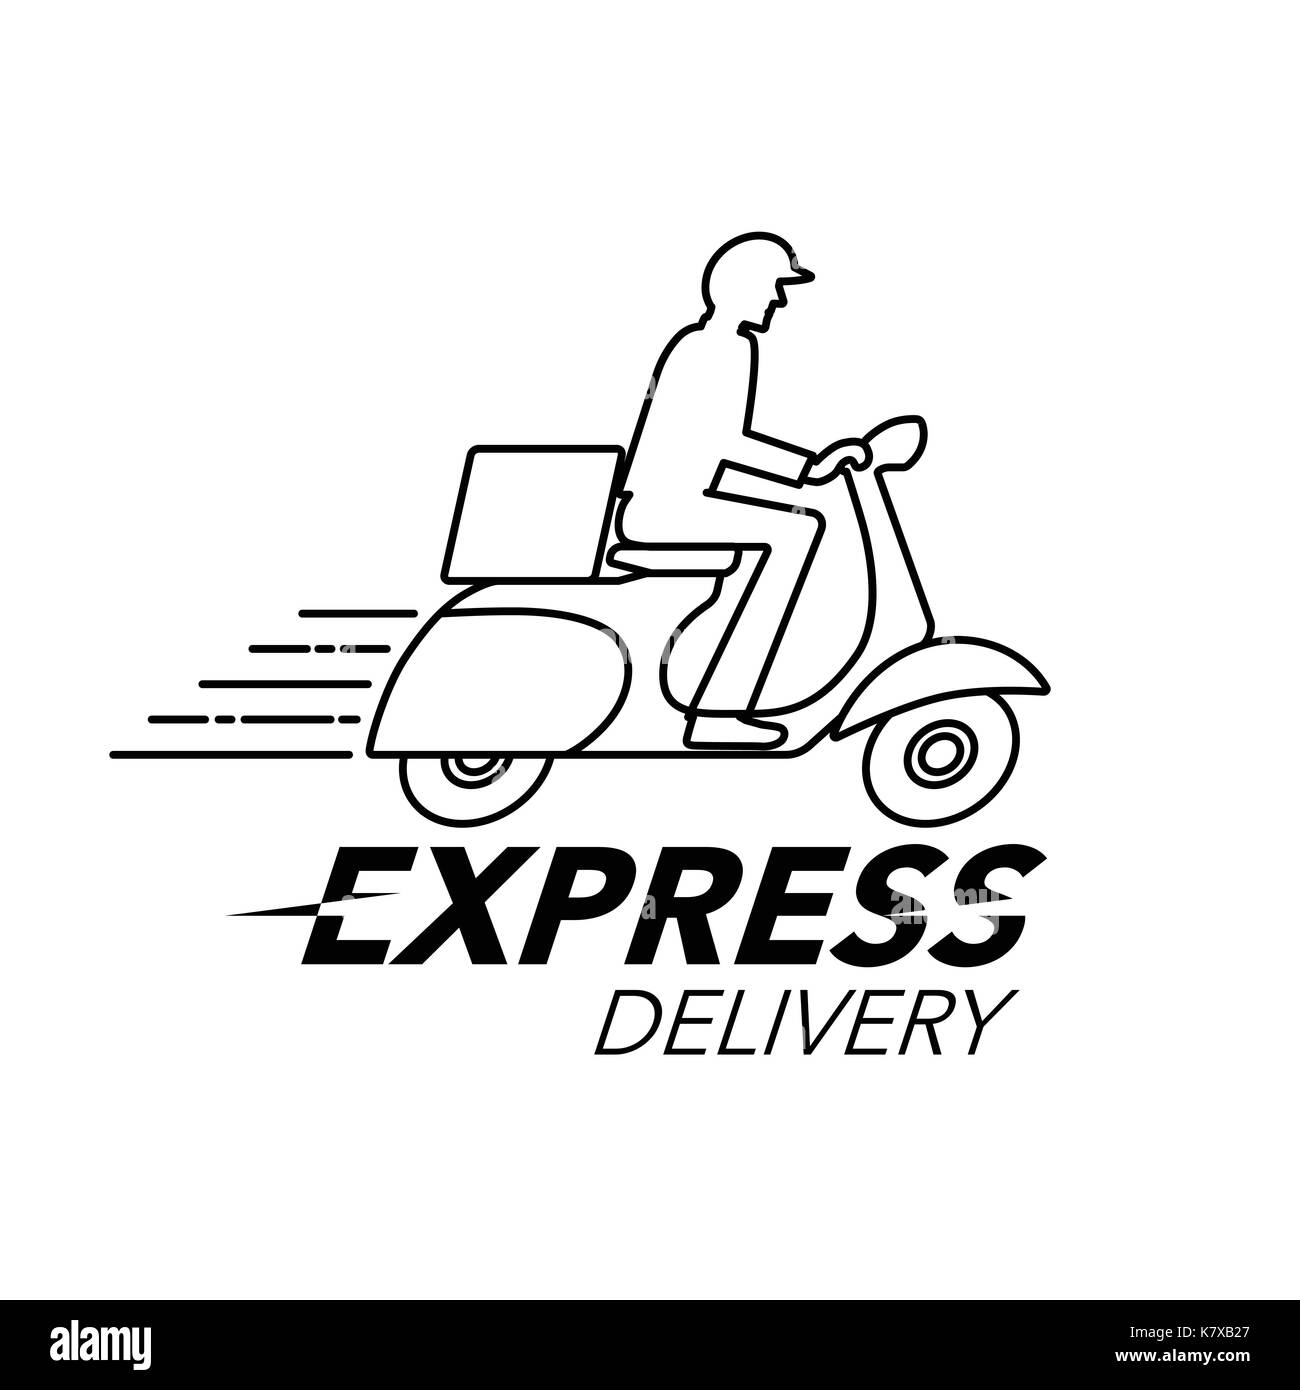 express delivery icon concept scooter motorcycle service